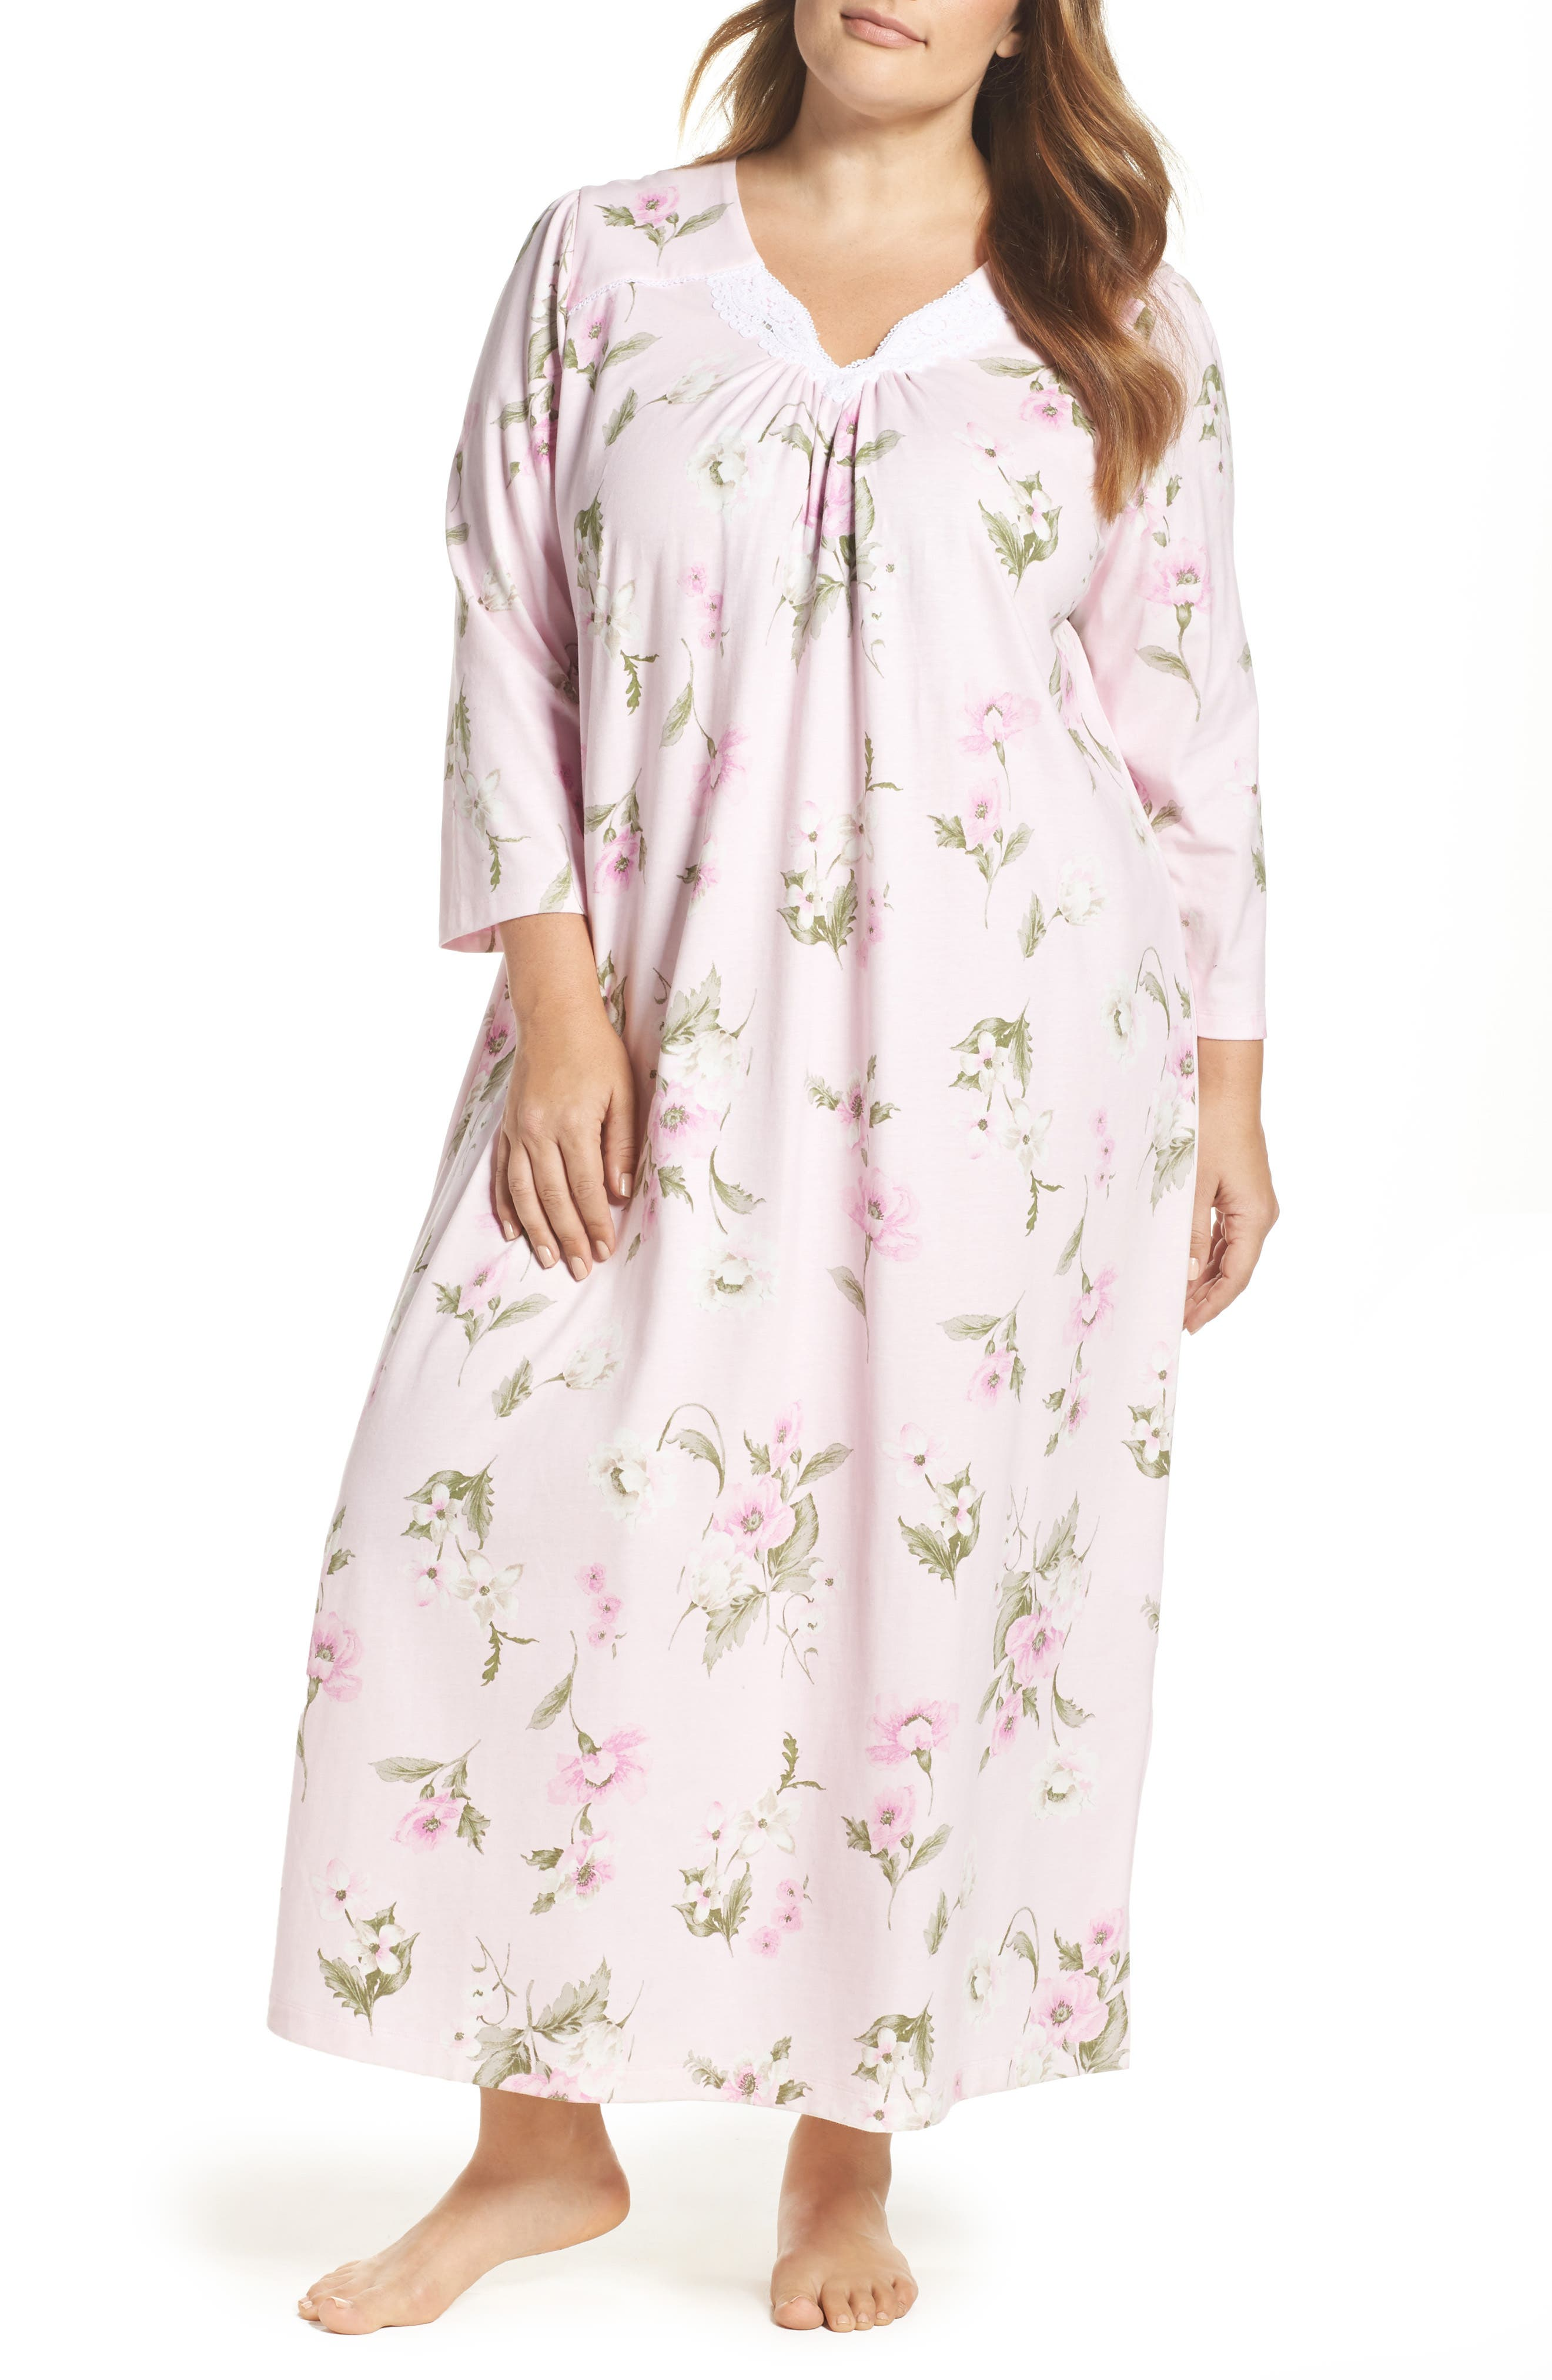 Carole Hochman Knit Nightgown (Plus Size)